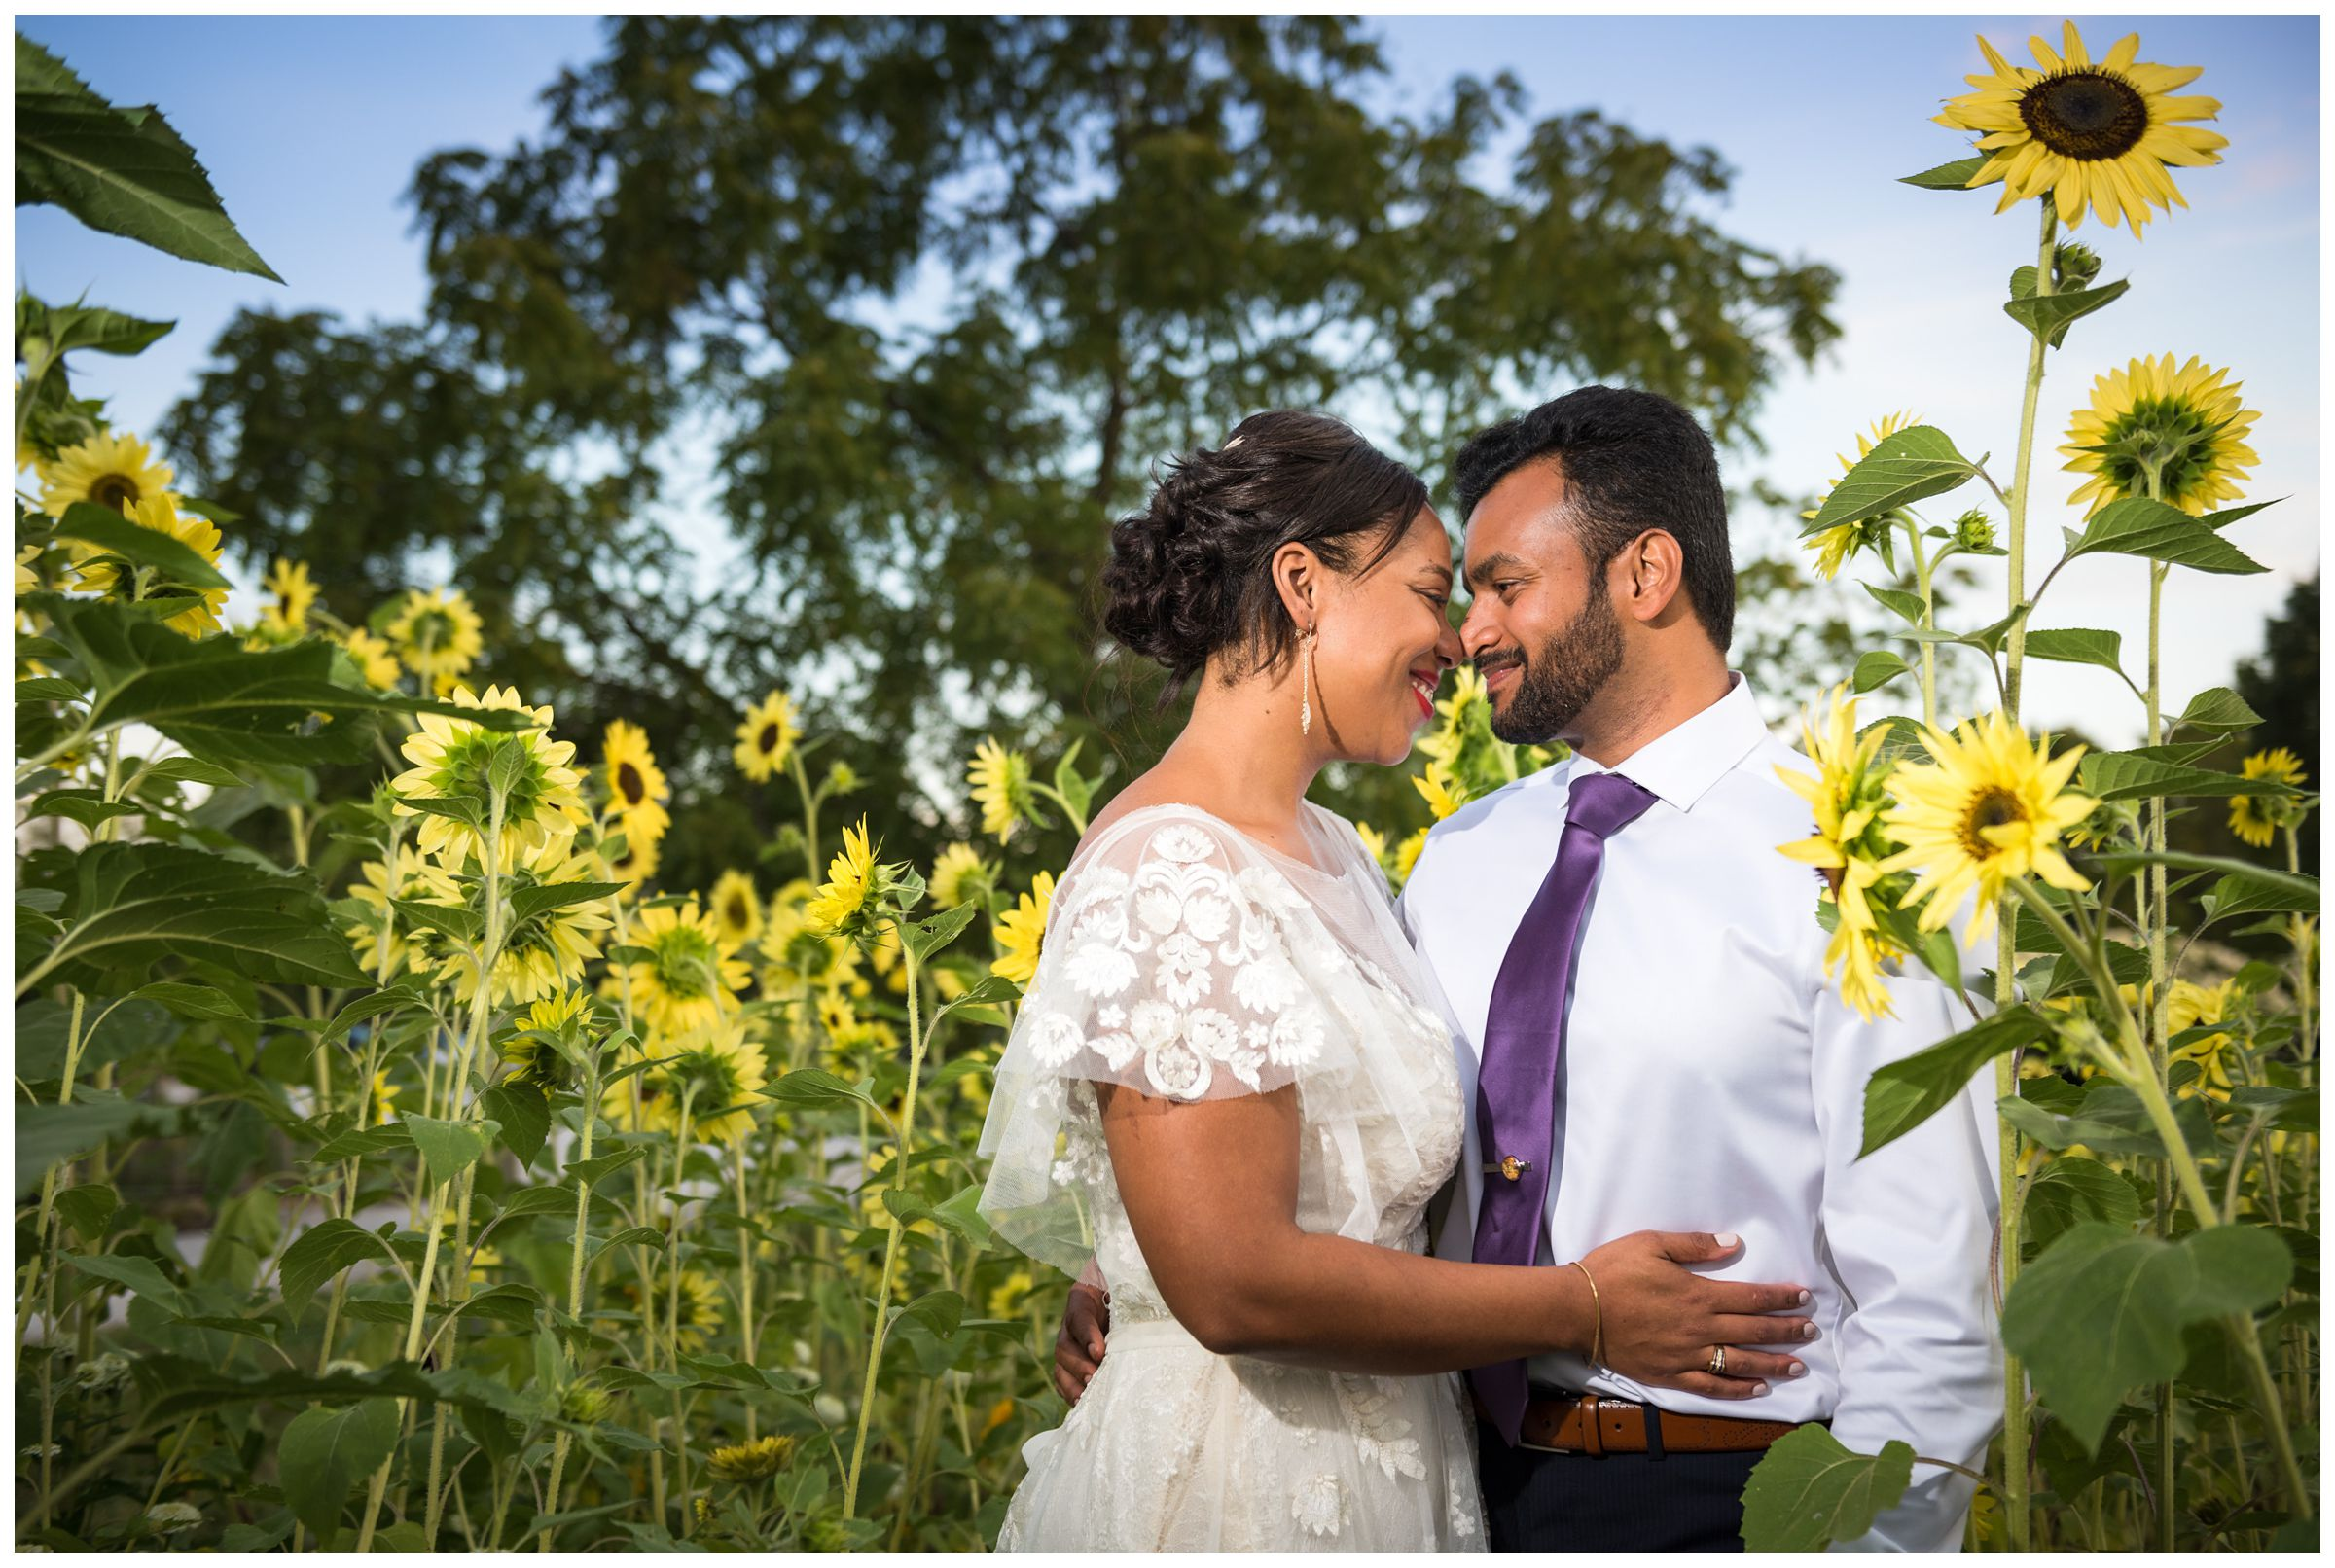 bride and groom fall wedding portrait by Columbus Ohio wedding photographer in sunflower field at Jorgensen Farms